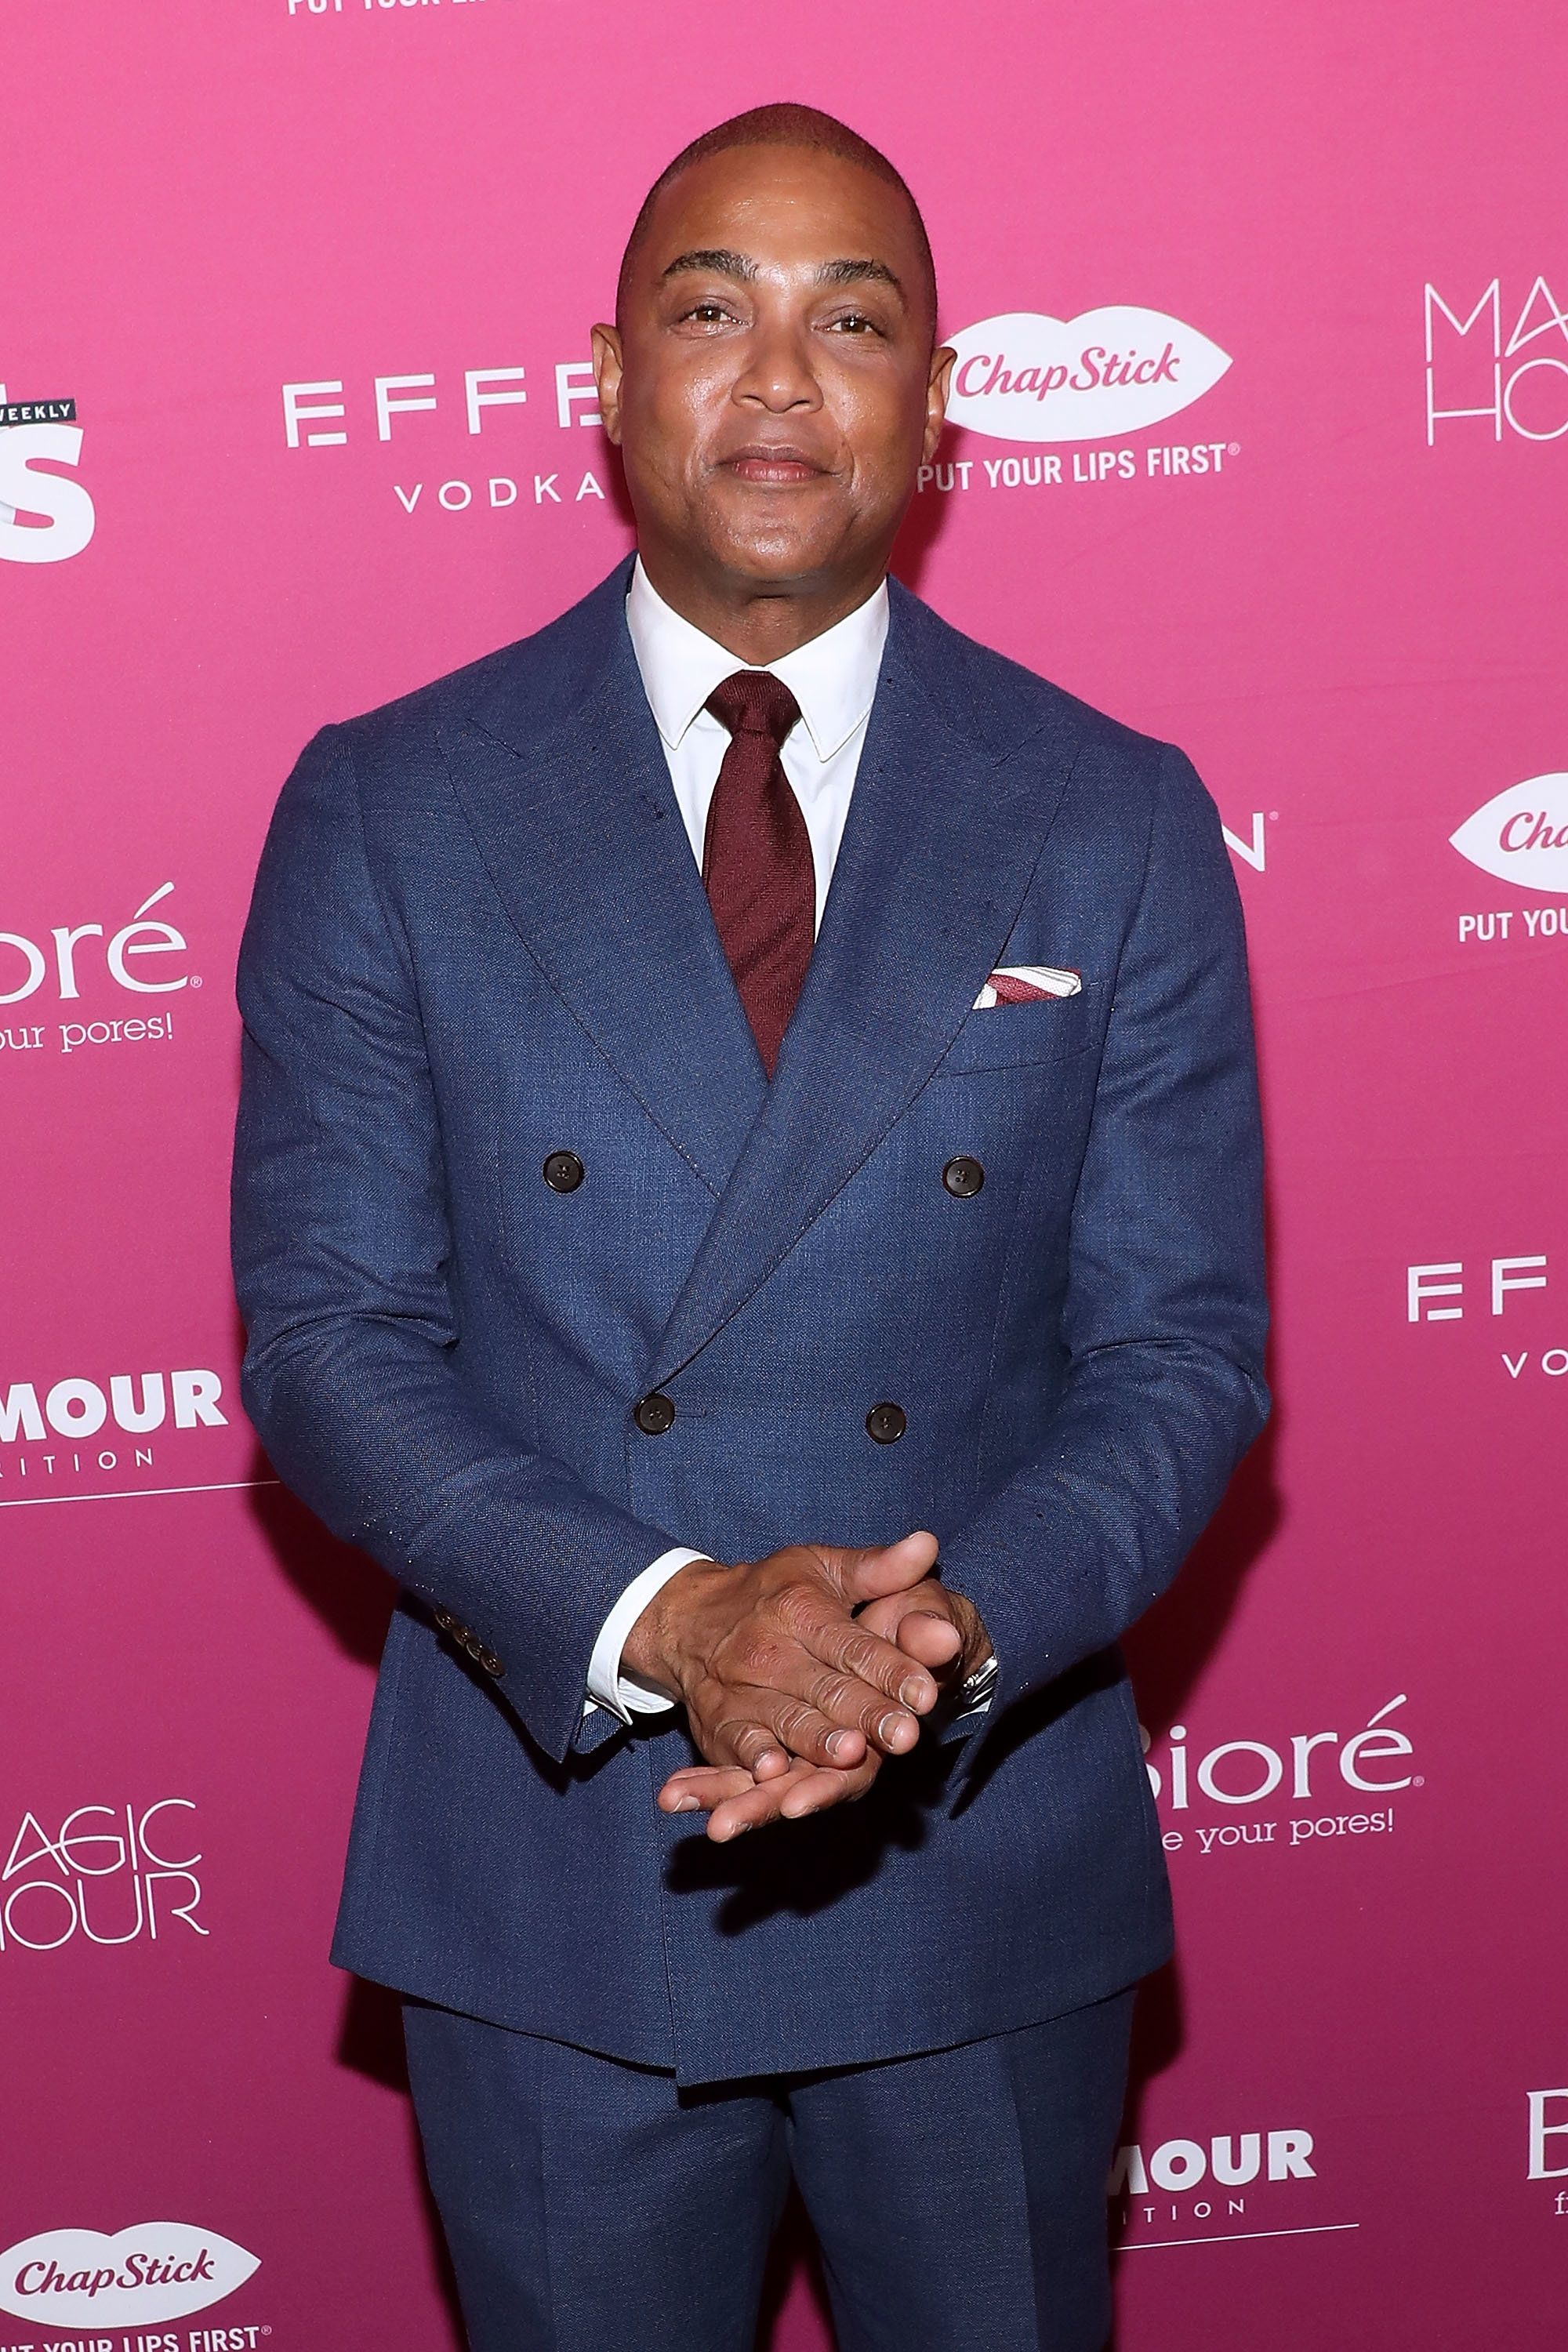 NEW YORK, NY - SEPTEMBER 12:  Don Lemon attends the 2018 US Weekly Most Stylish New Yorkers at Magic Hour Rooftop Bar & Lounge on September 12, 2018 in New York City.  (Photo by Taylor Hill/WireImage)